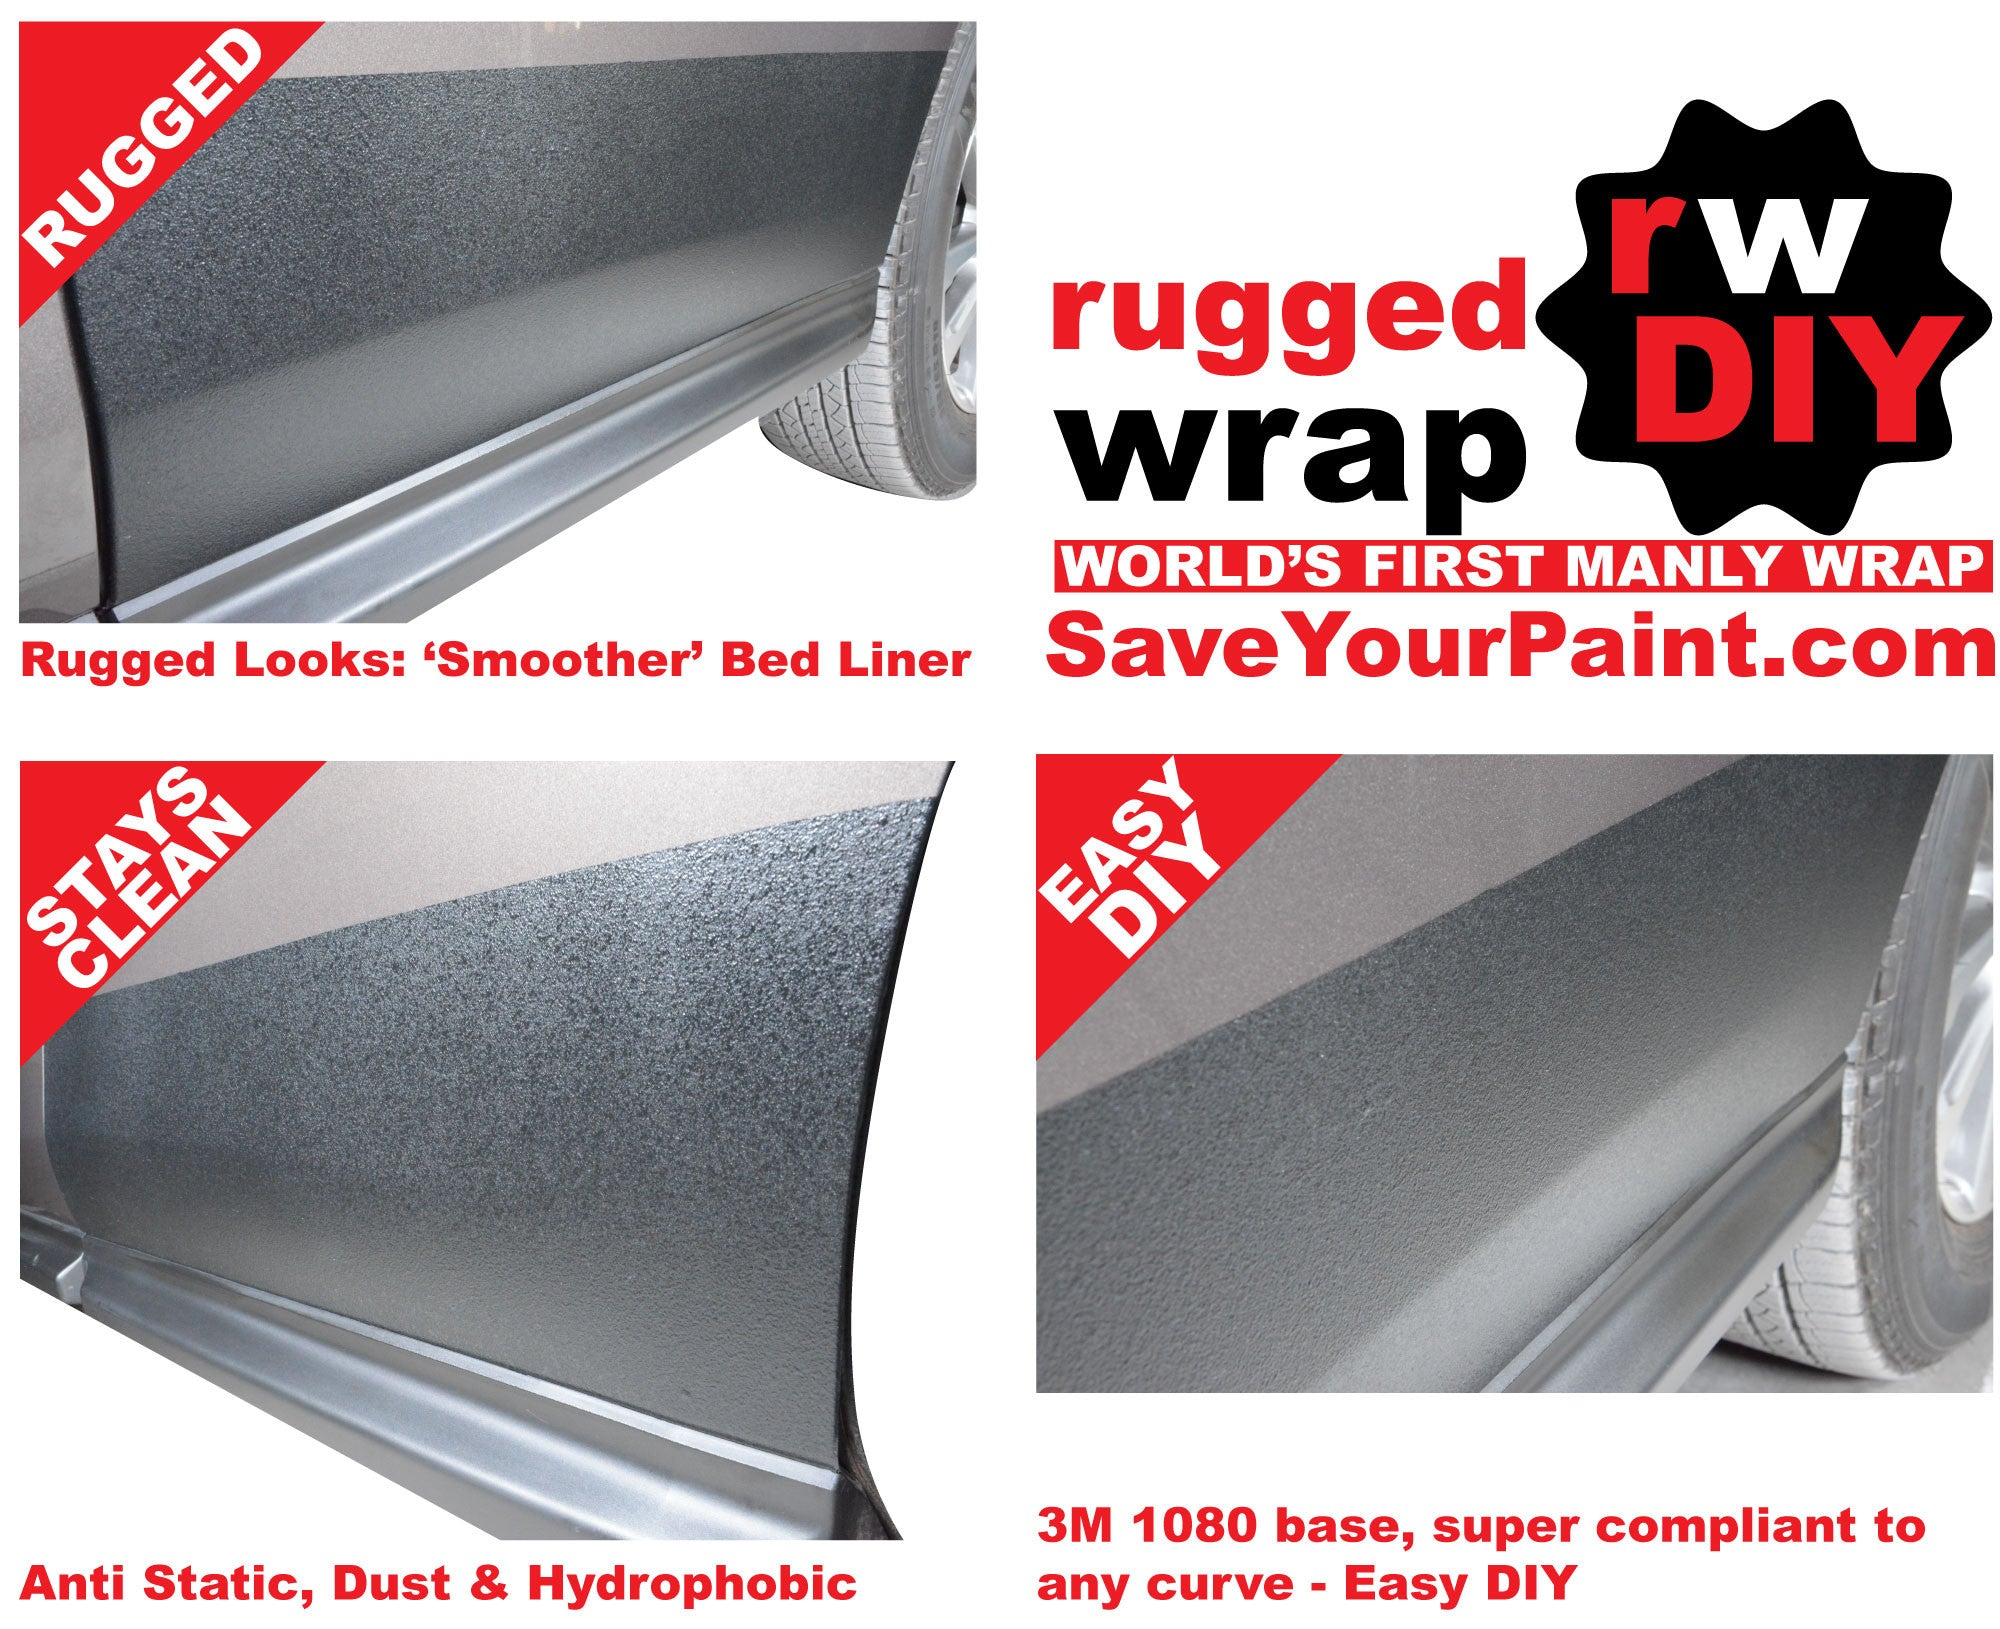 World s First Bed Liner on Body Panel Look Vinyl Wrap 3M – ColorX